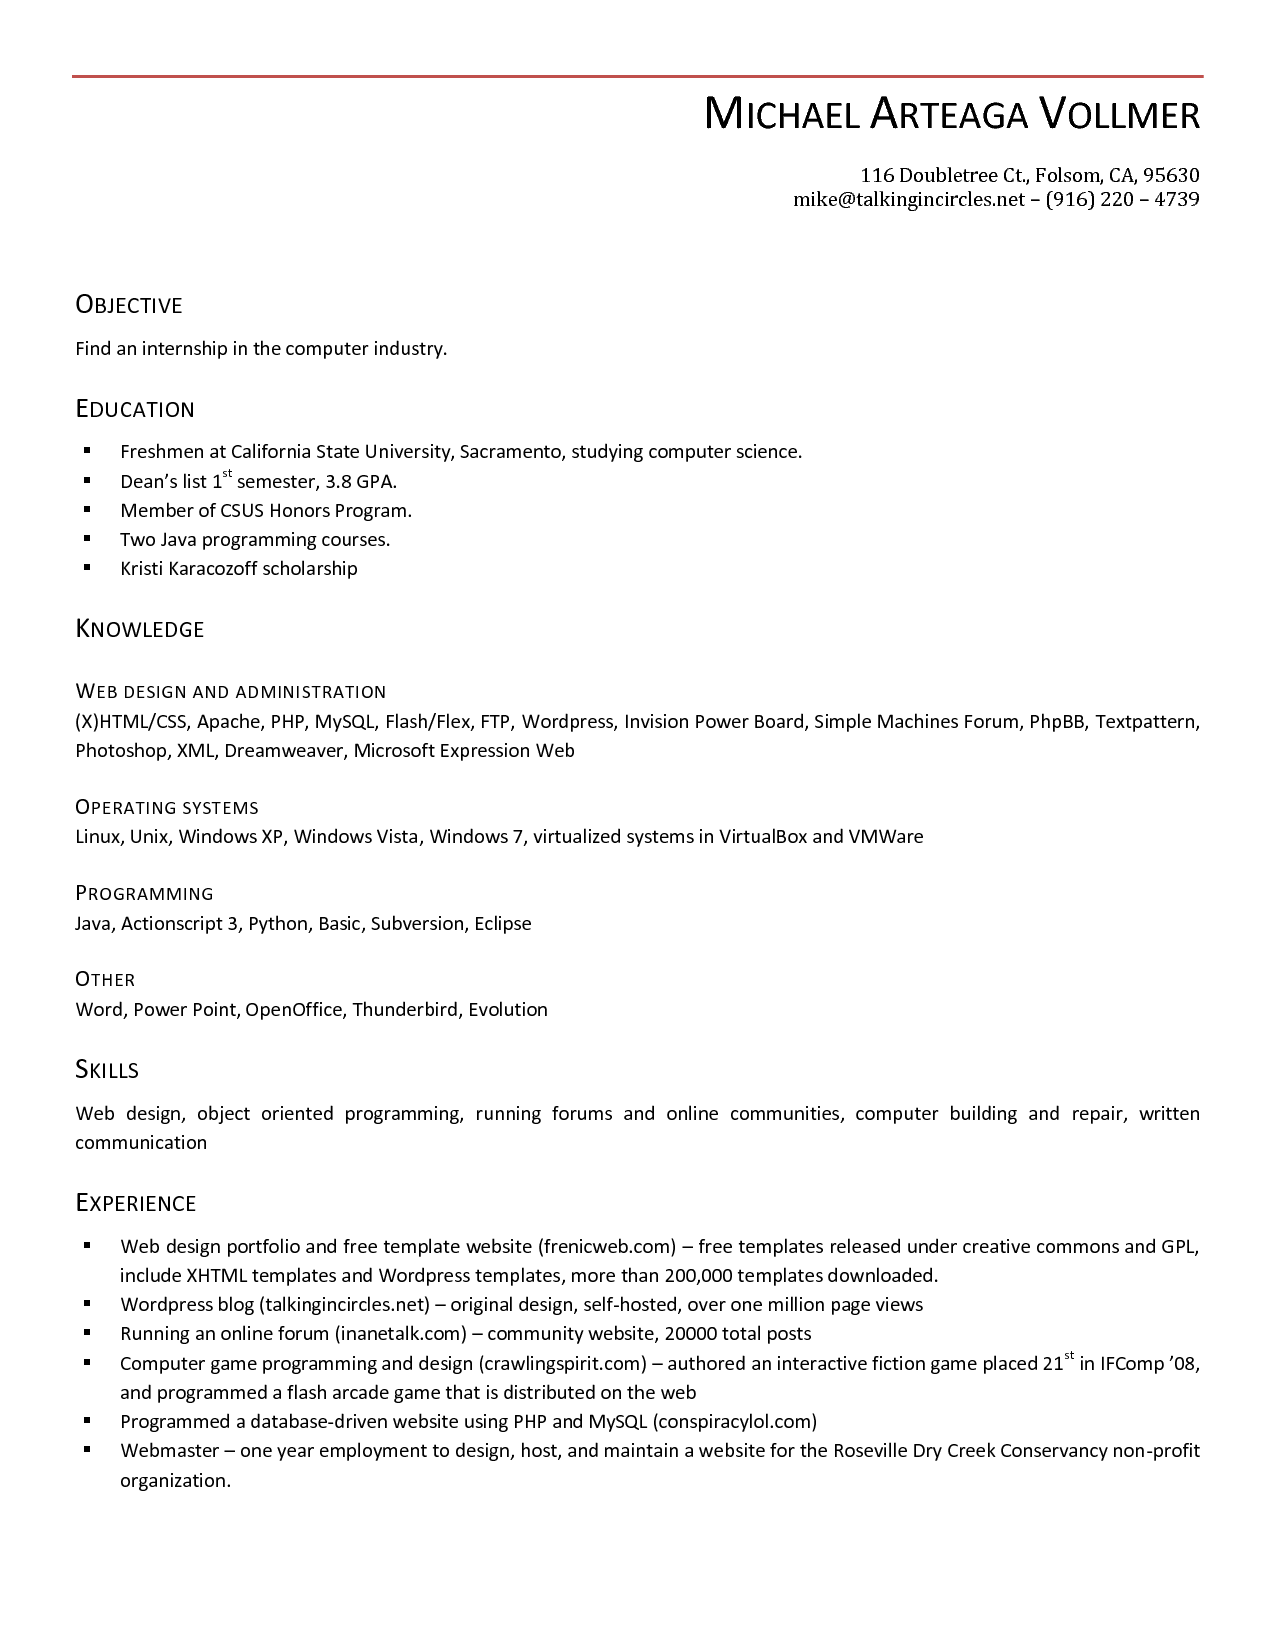 Resume Templates Free Download For Microsoft Word Legal Template Best Create Professional Resumes Online Simple Openo